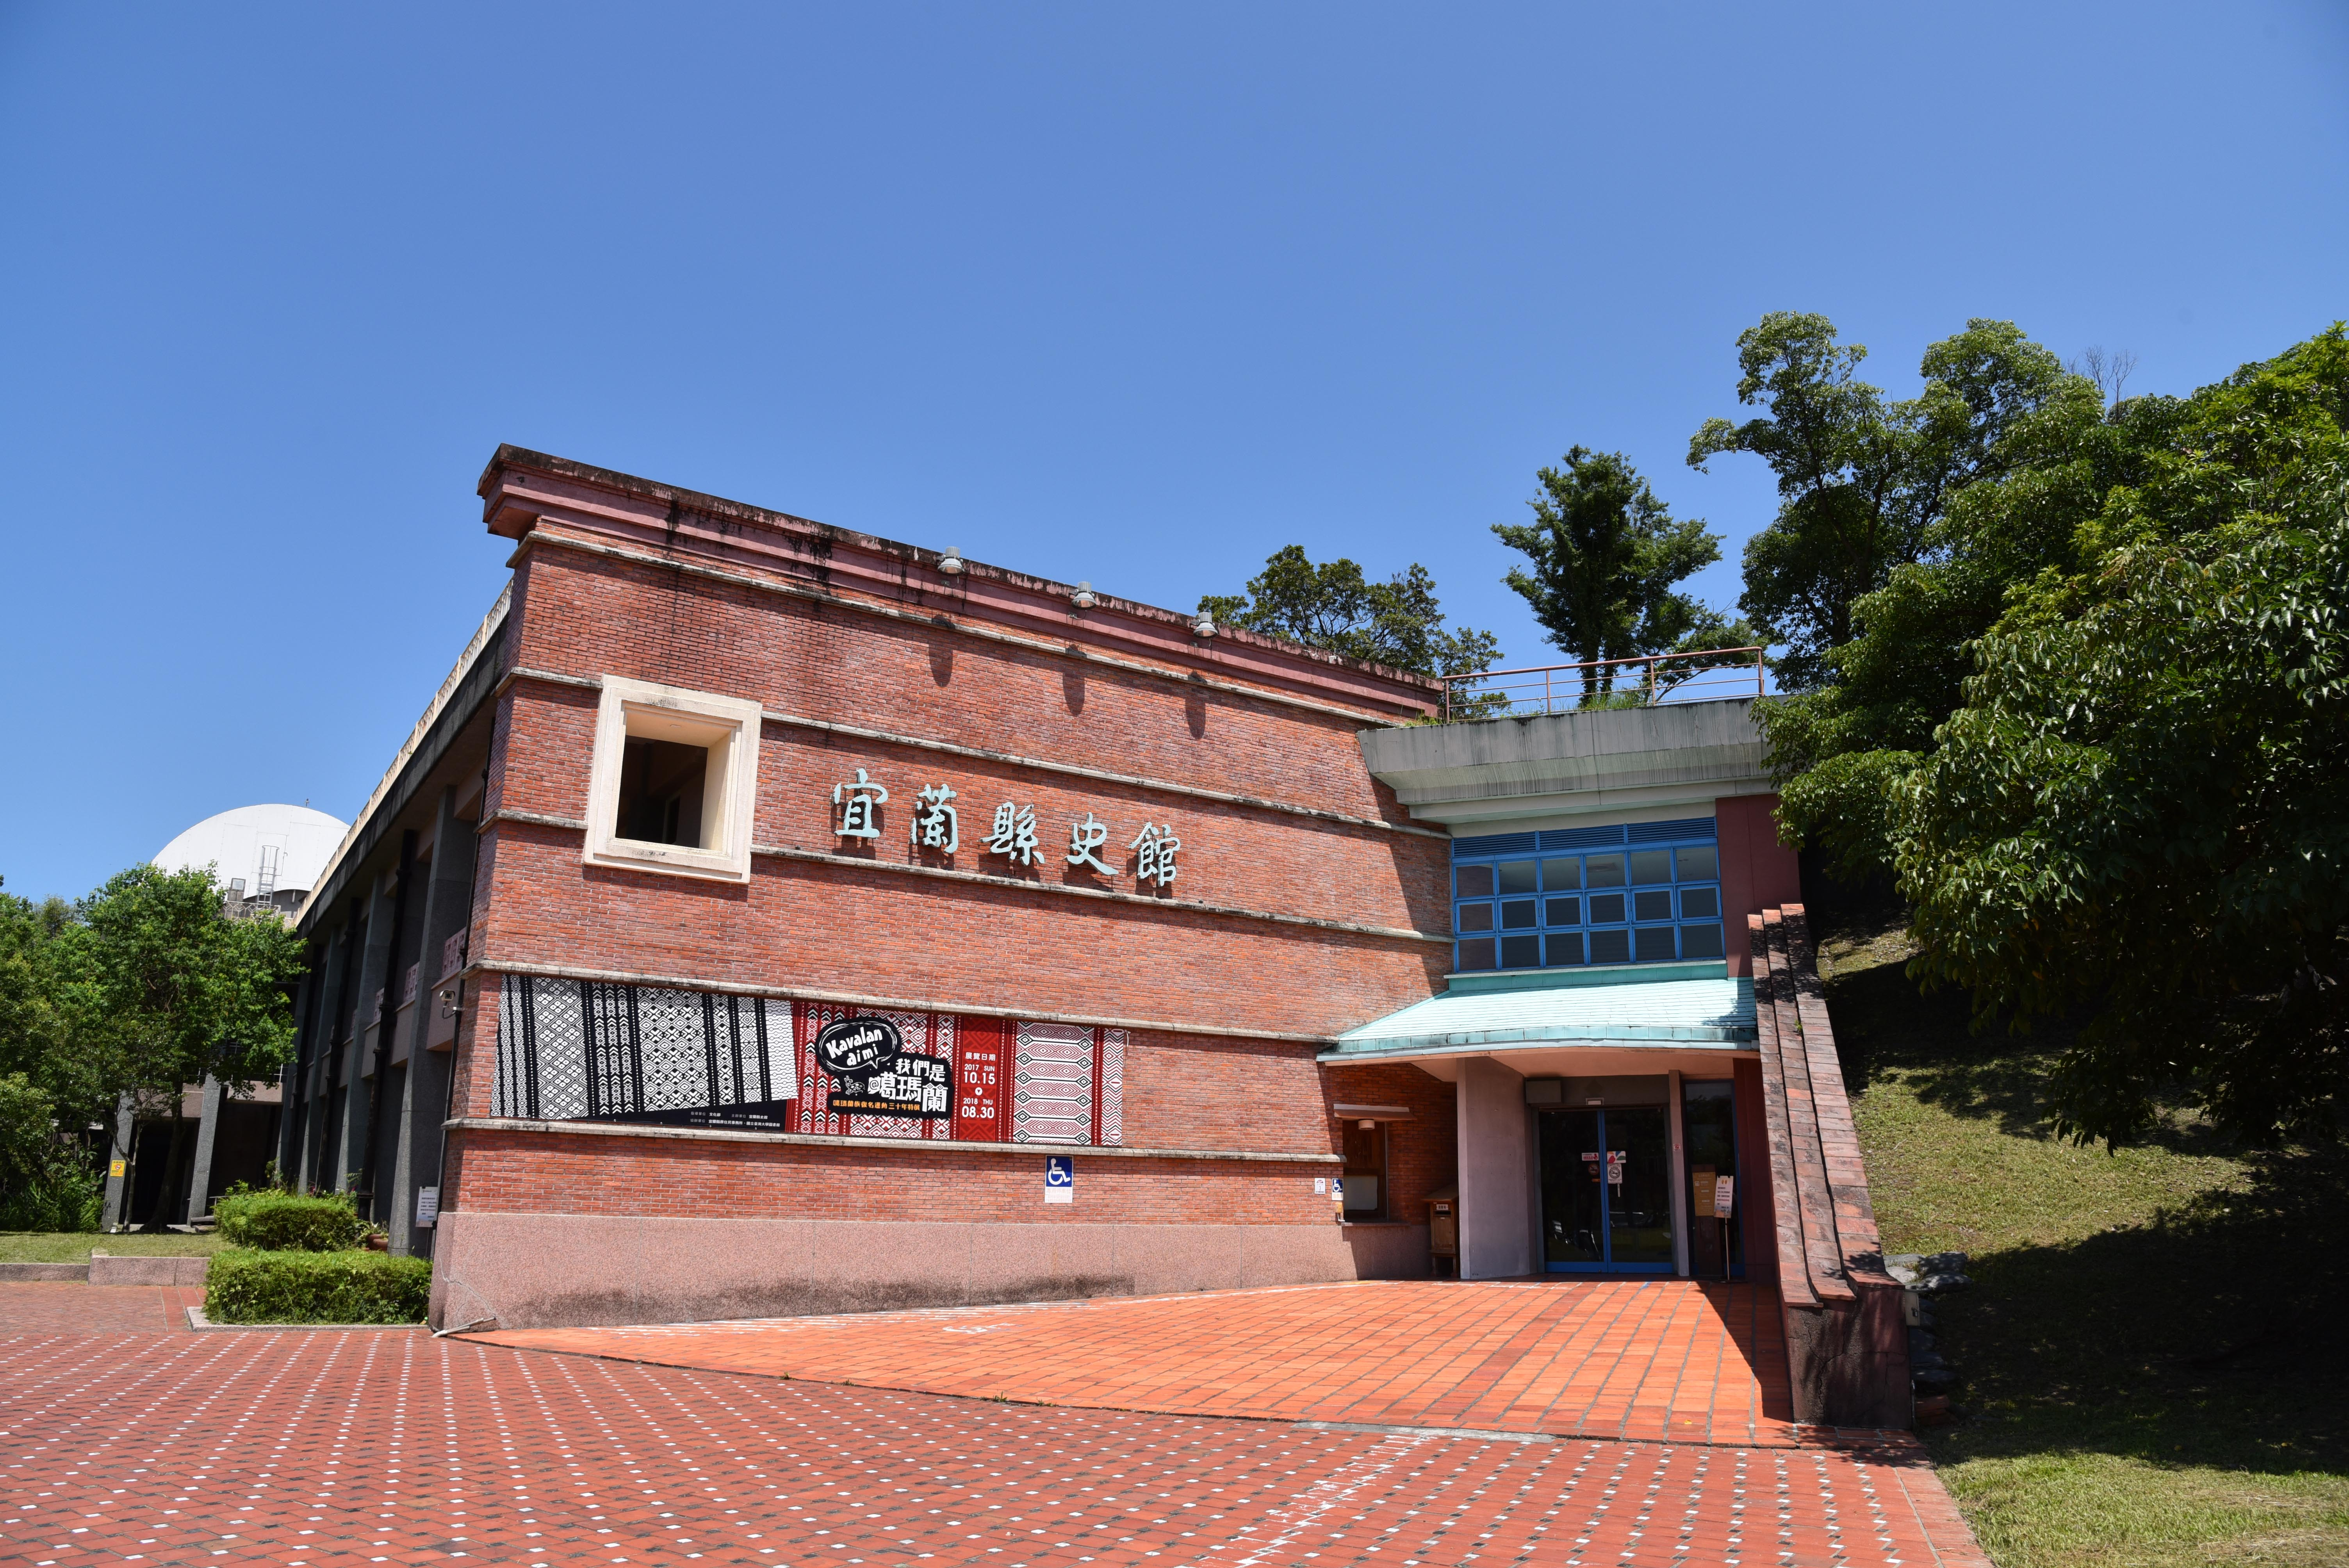 The Institute of Yilan County History